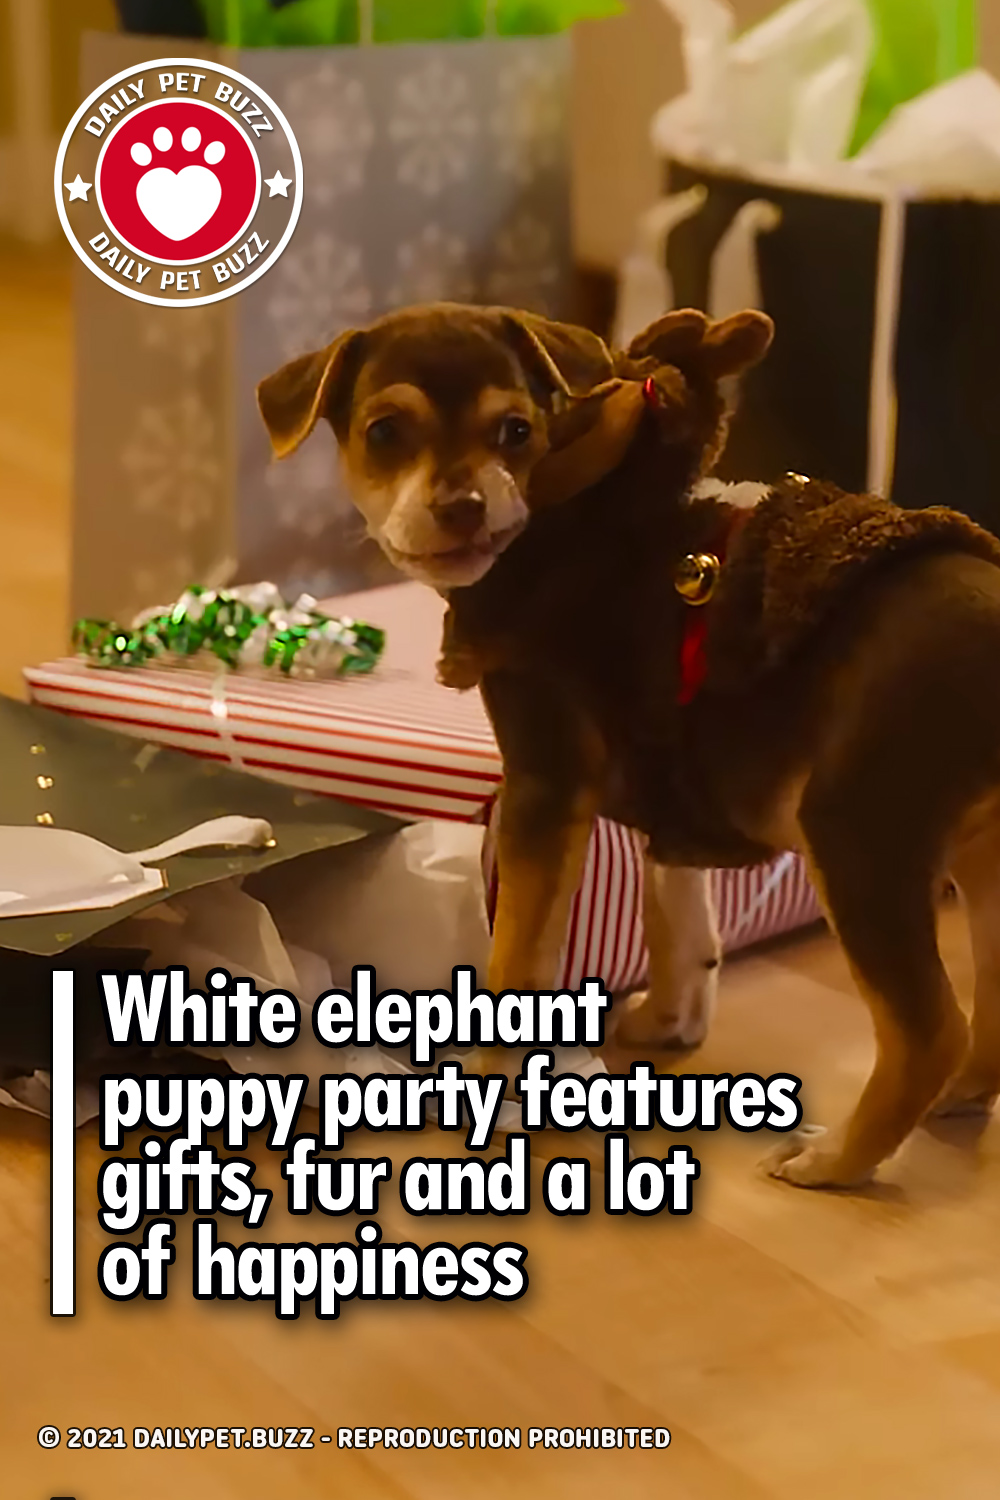 White elephant puppy party features gifts, fur and a lot of happiness